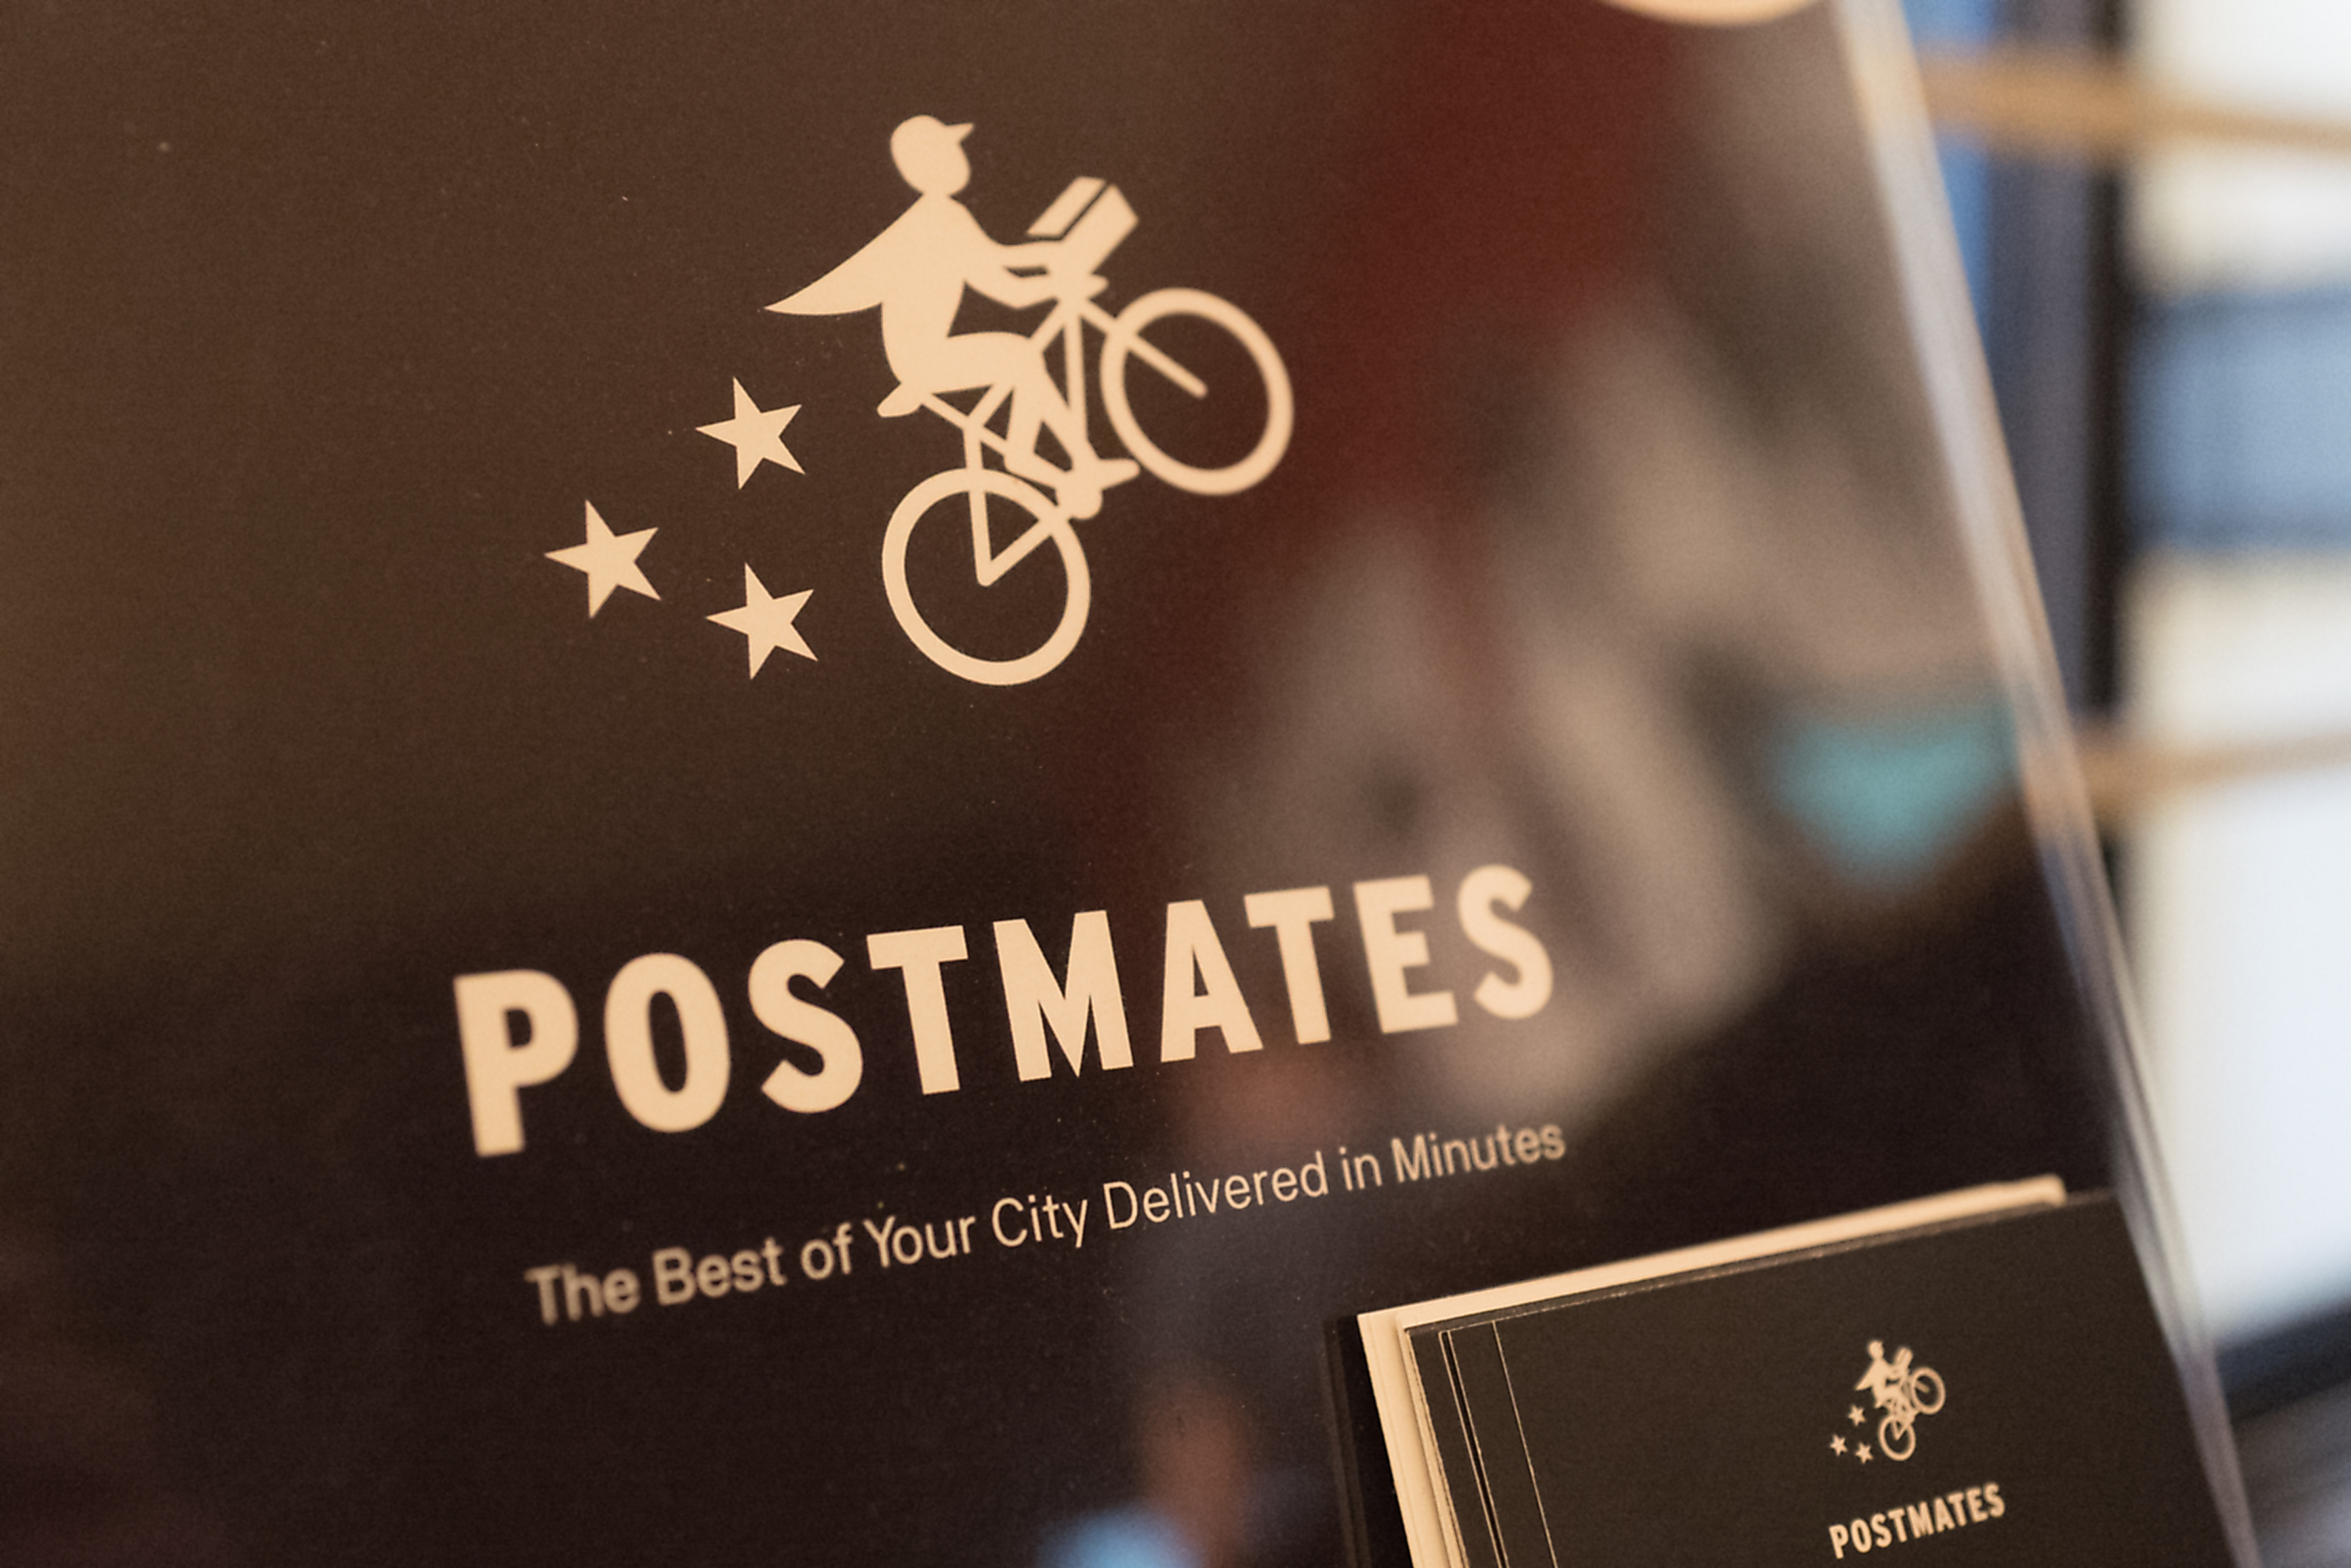 Postmates Expands to 100 More Cities, 300 Chipotle Locations